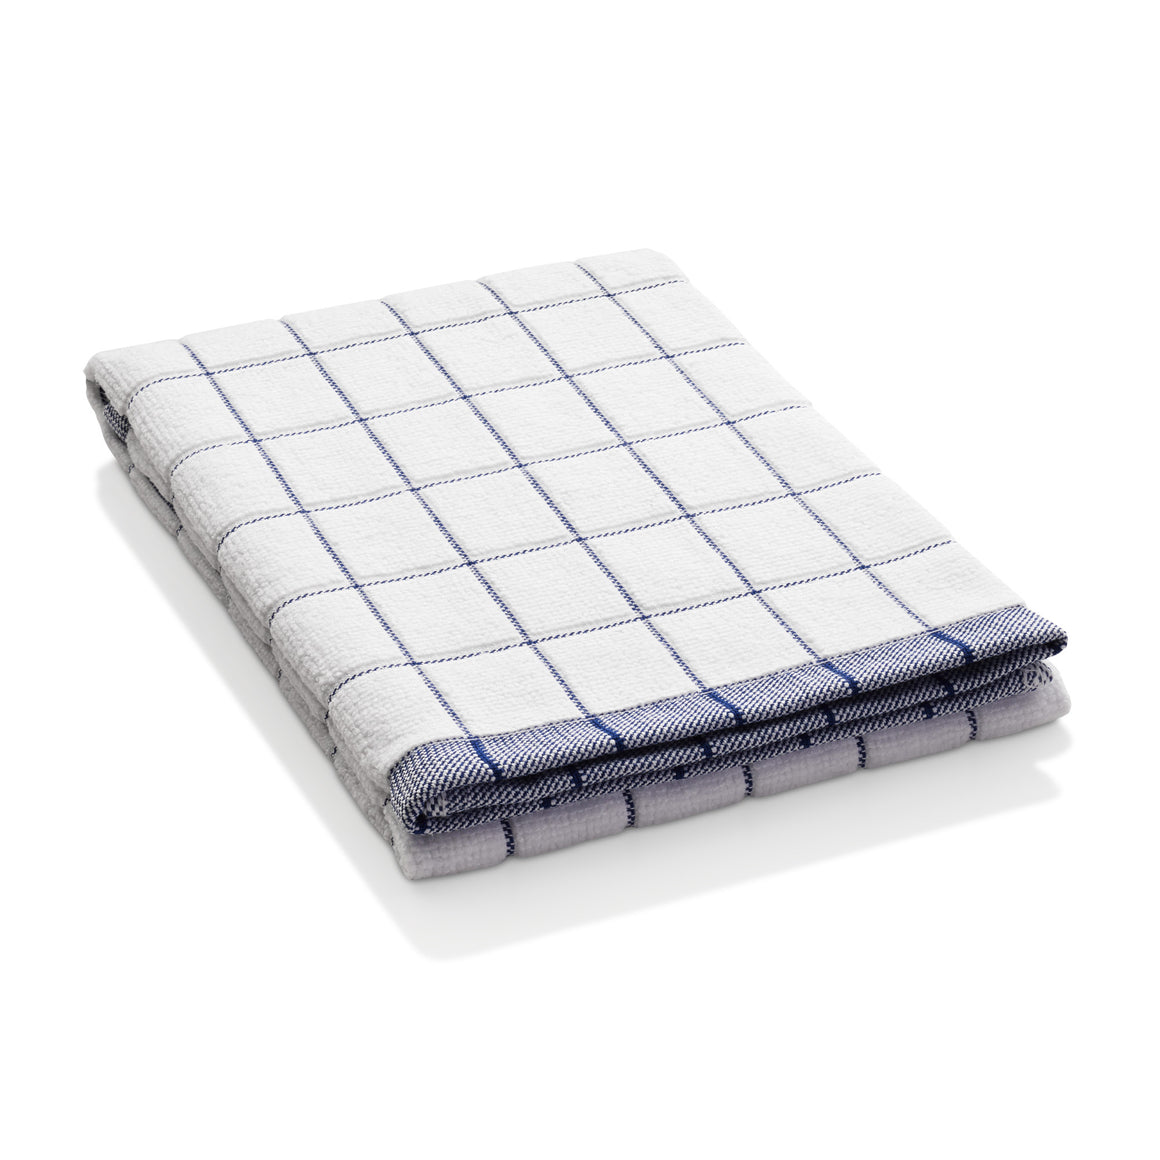 Classic Check Dish Towel - Super-Absorbent Cloth